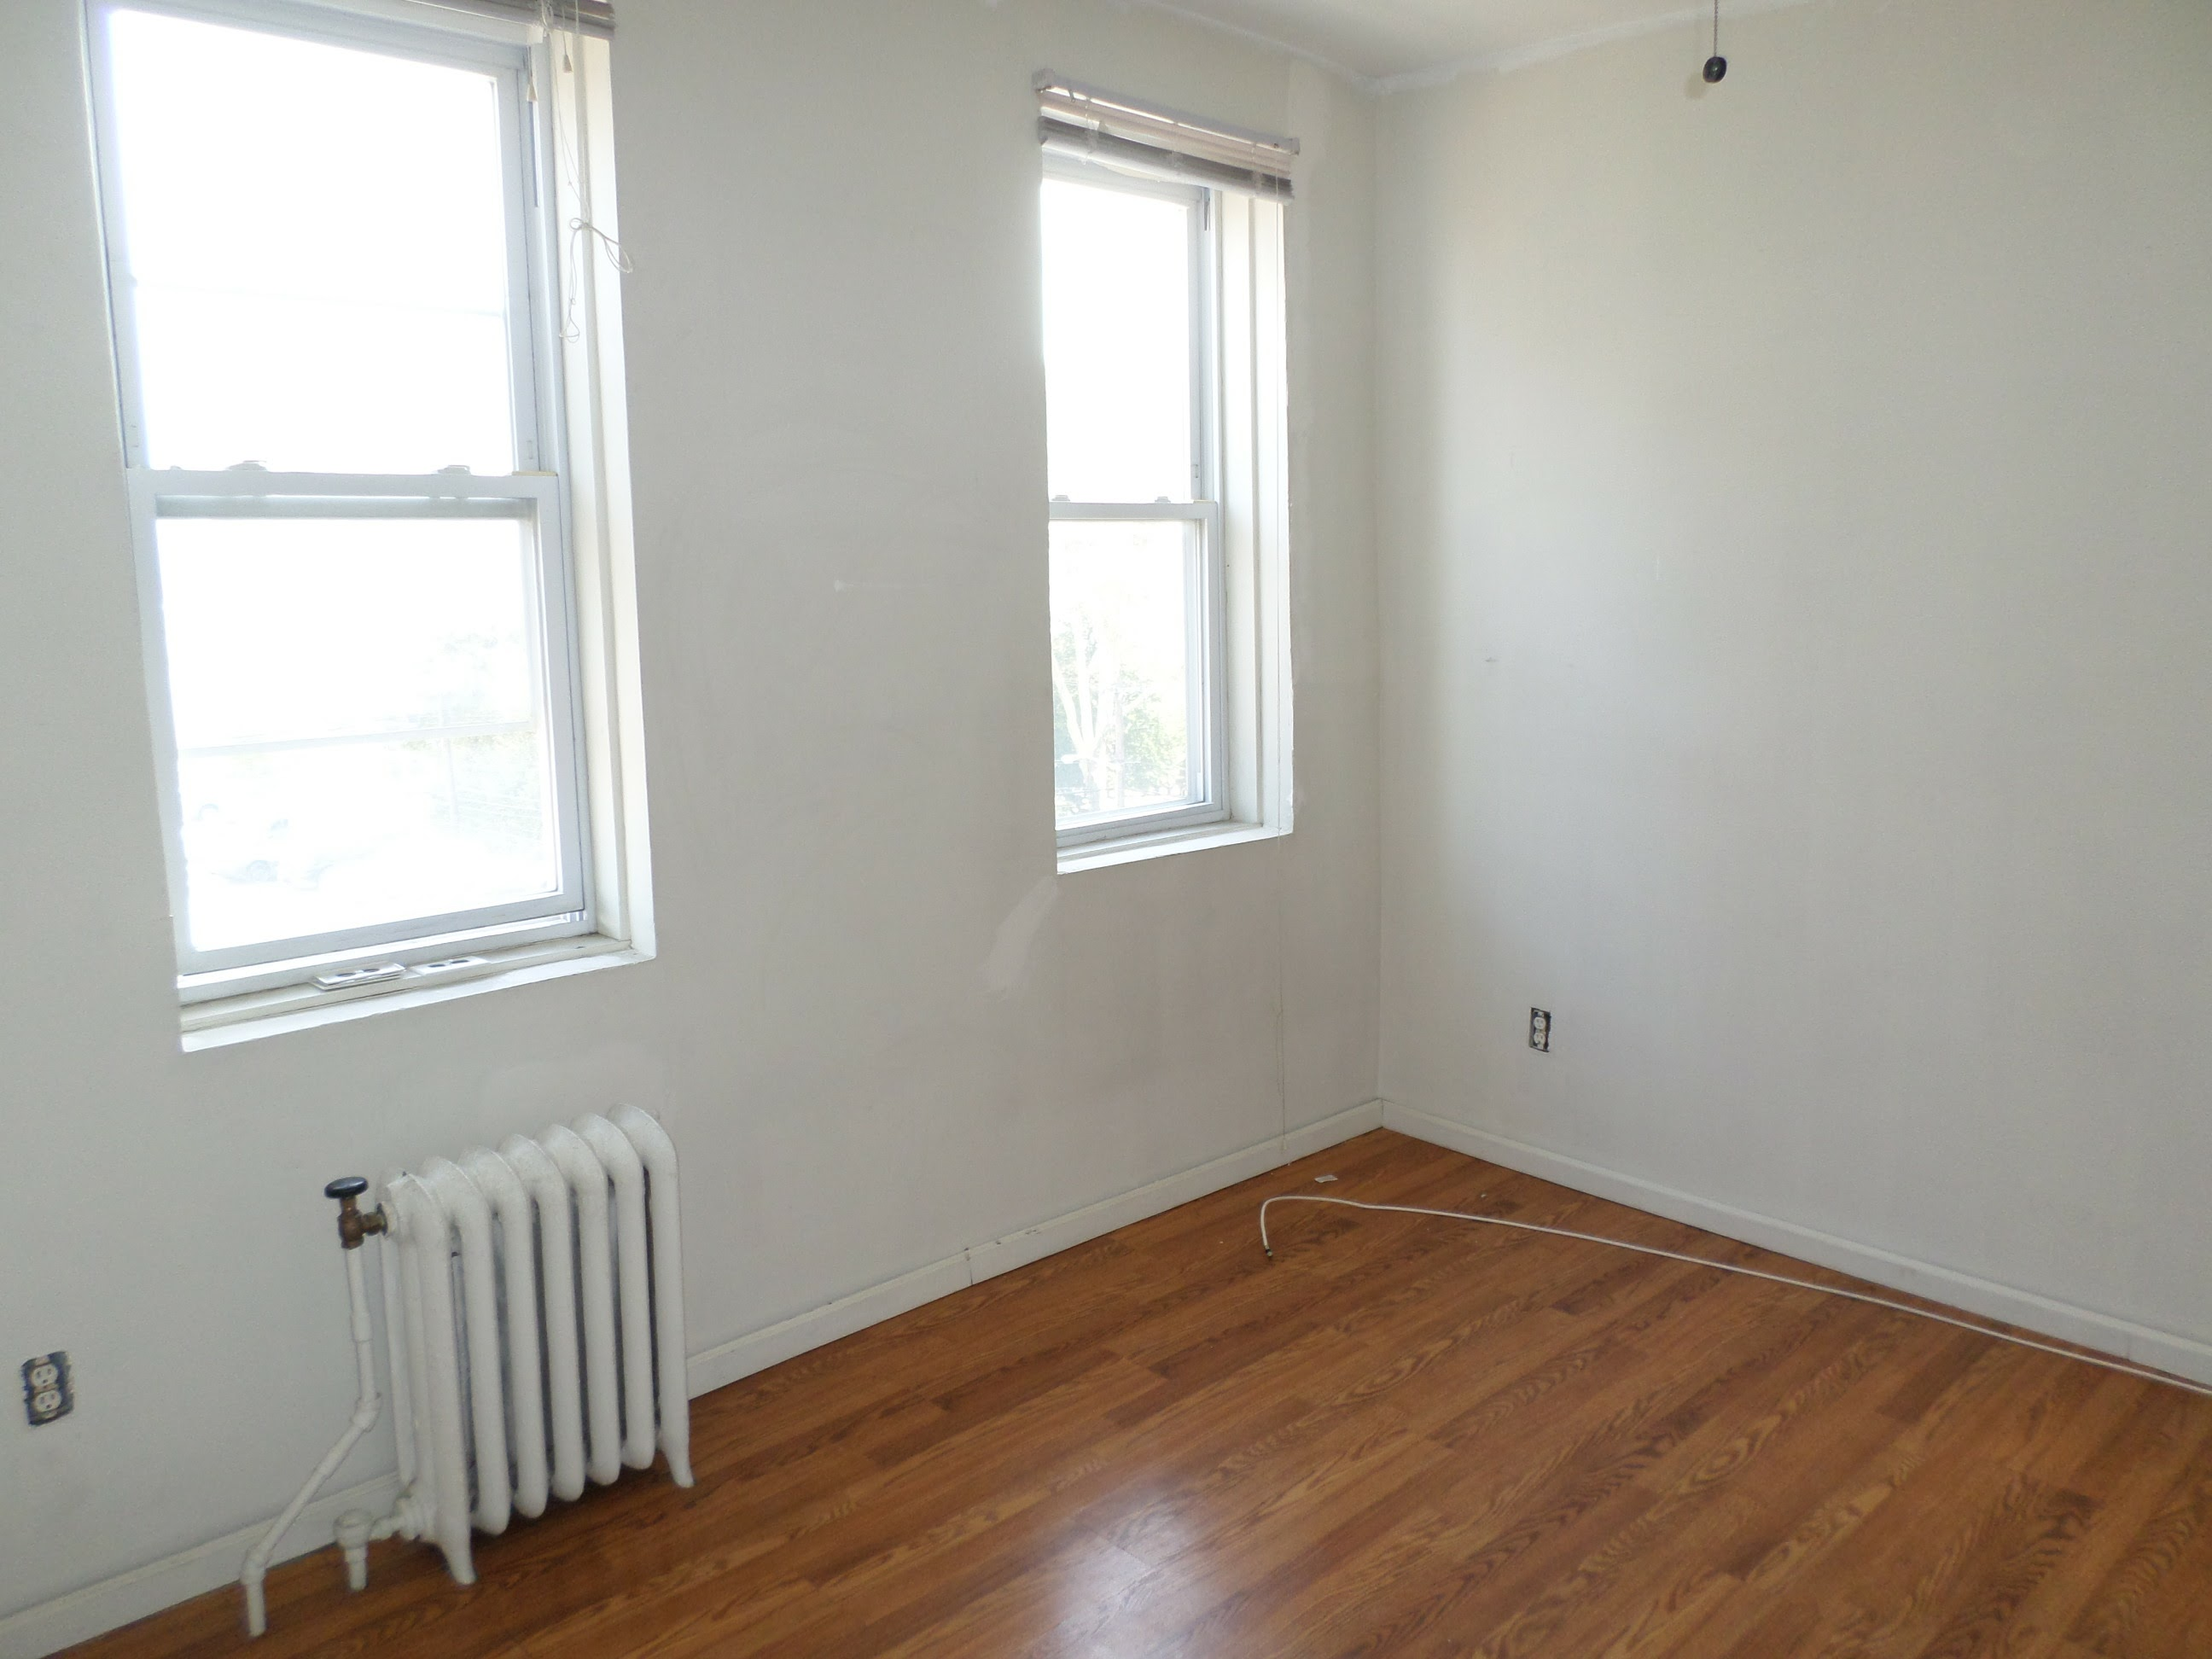 West New York - 2 Bedroom Apartment For Rent